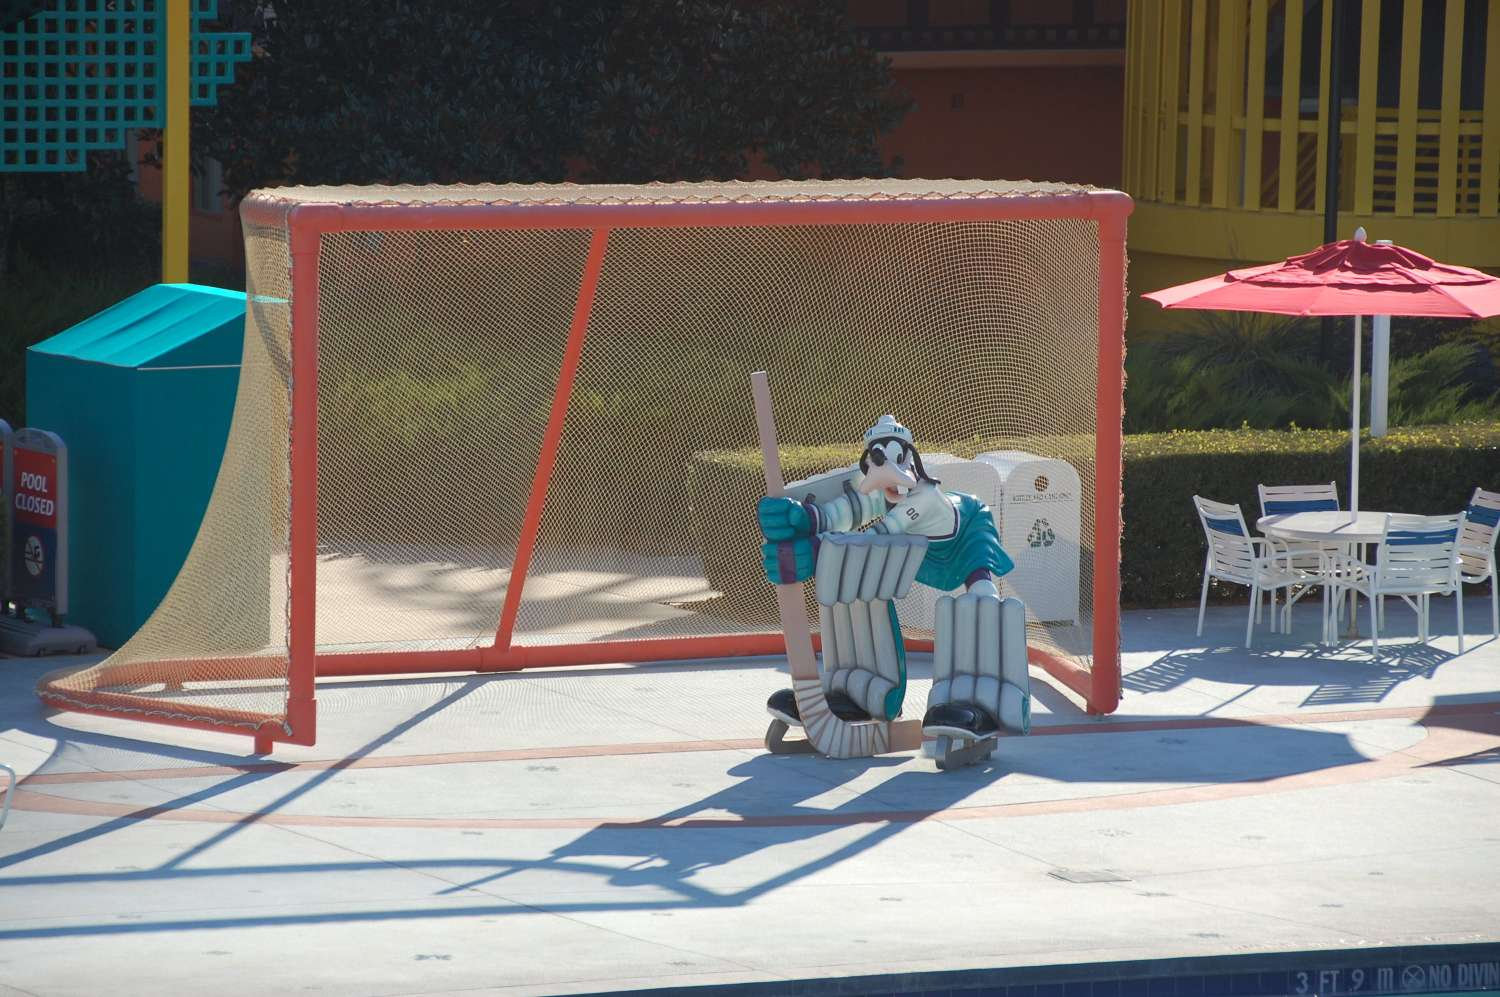 Hocky goalie Goofy near the Duck Pond pool at  Disney's All-Star Movies Resort